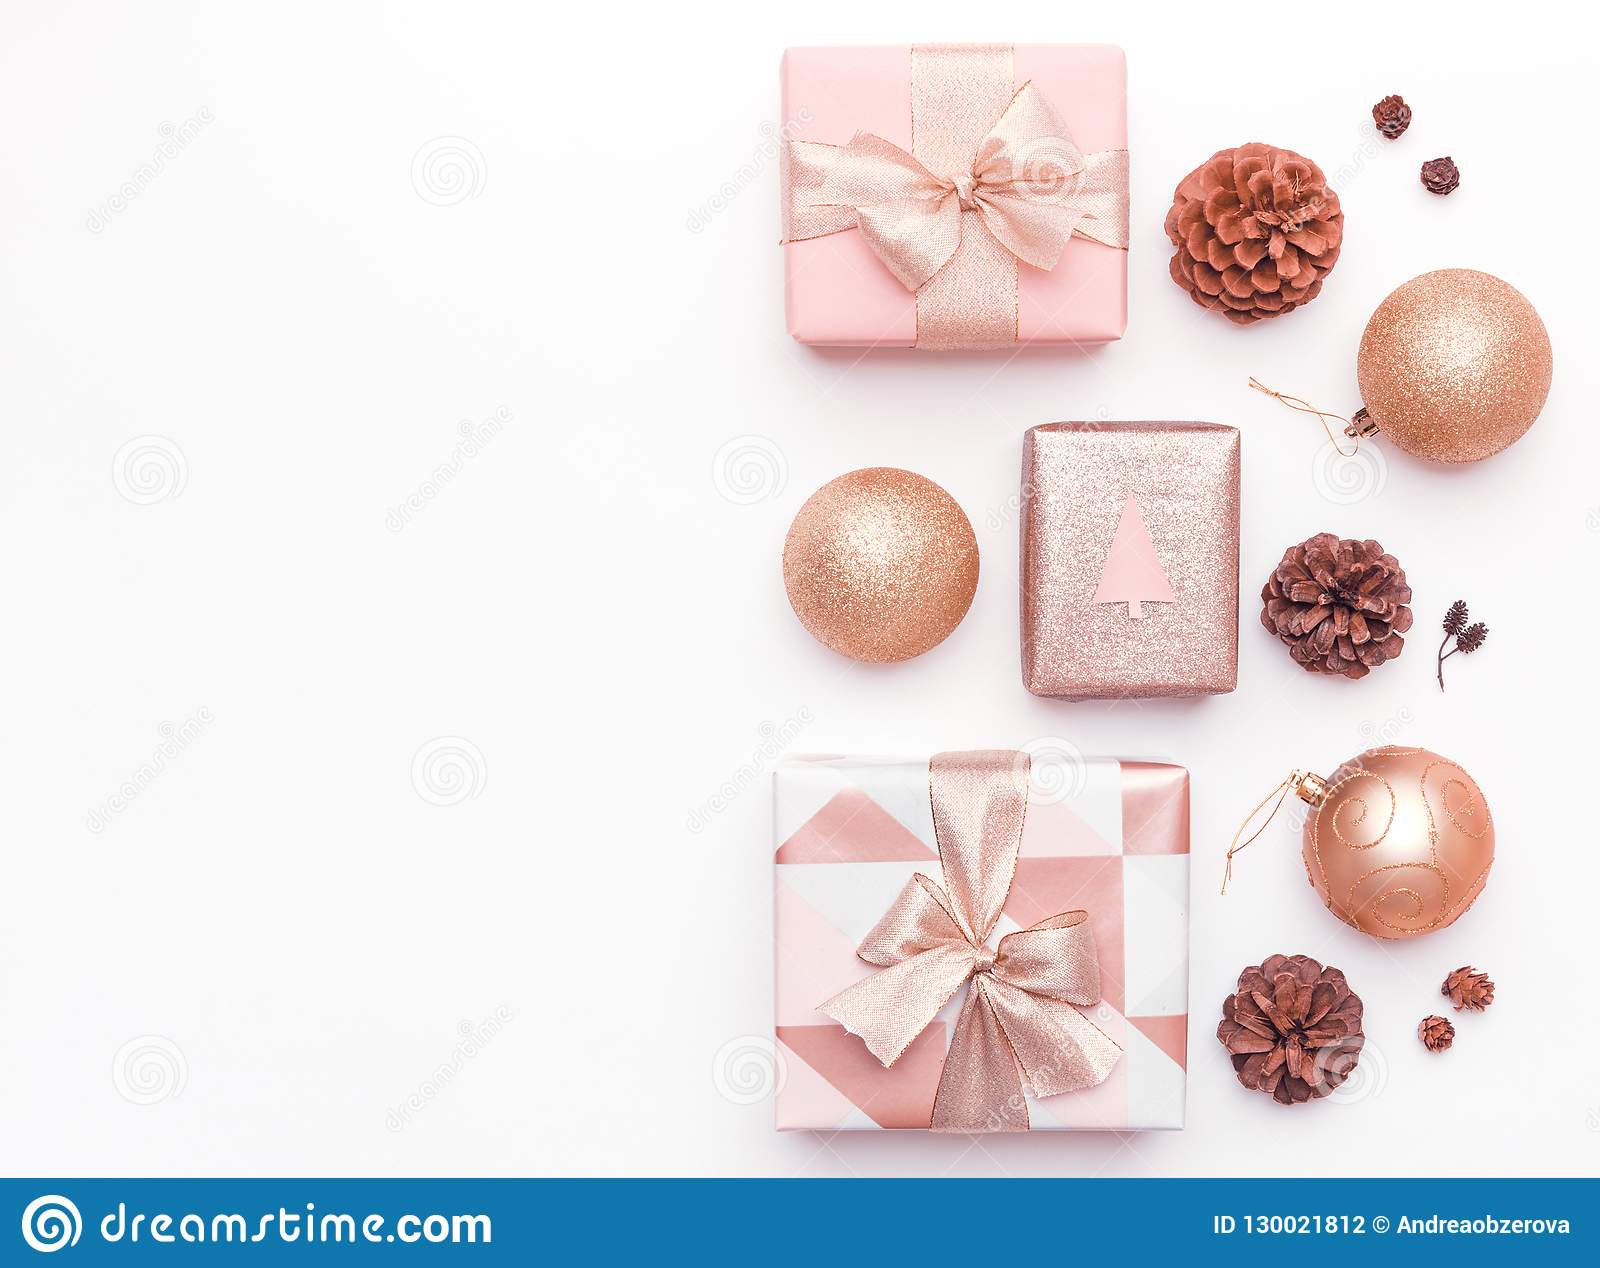 Pink christmas gifts isolated on white background. Wrapped xmas boxes, christmas ornaments, baubles and pine cones.